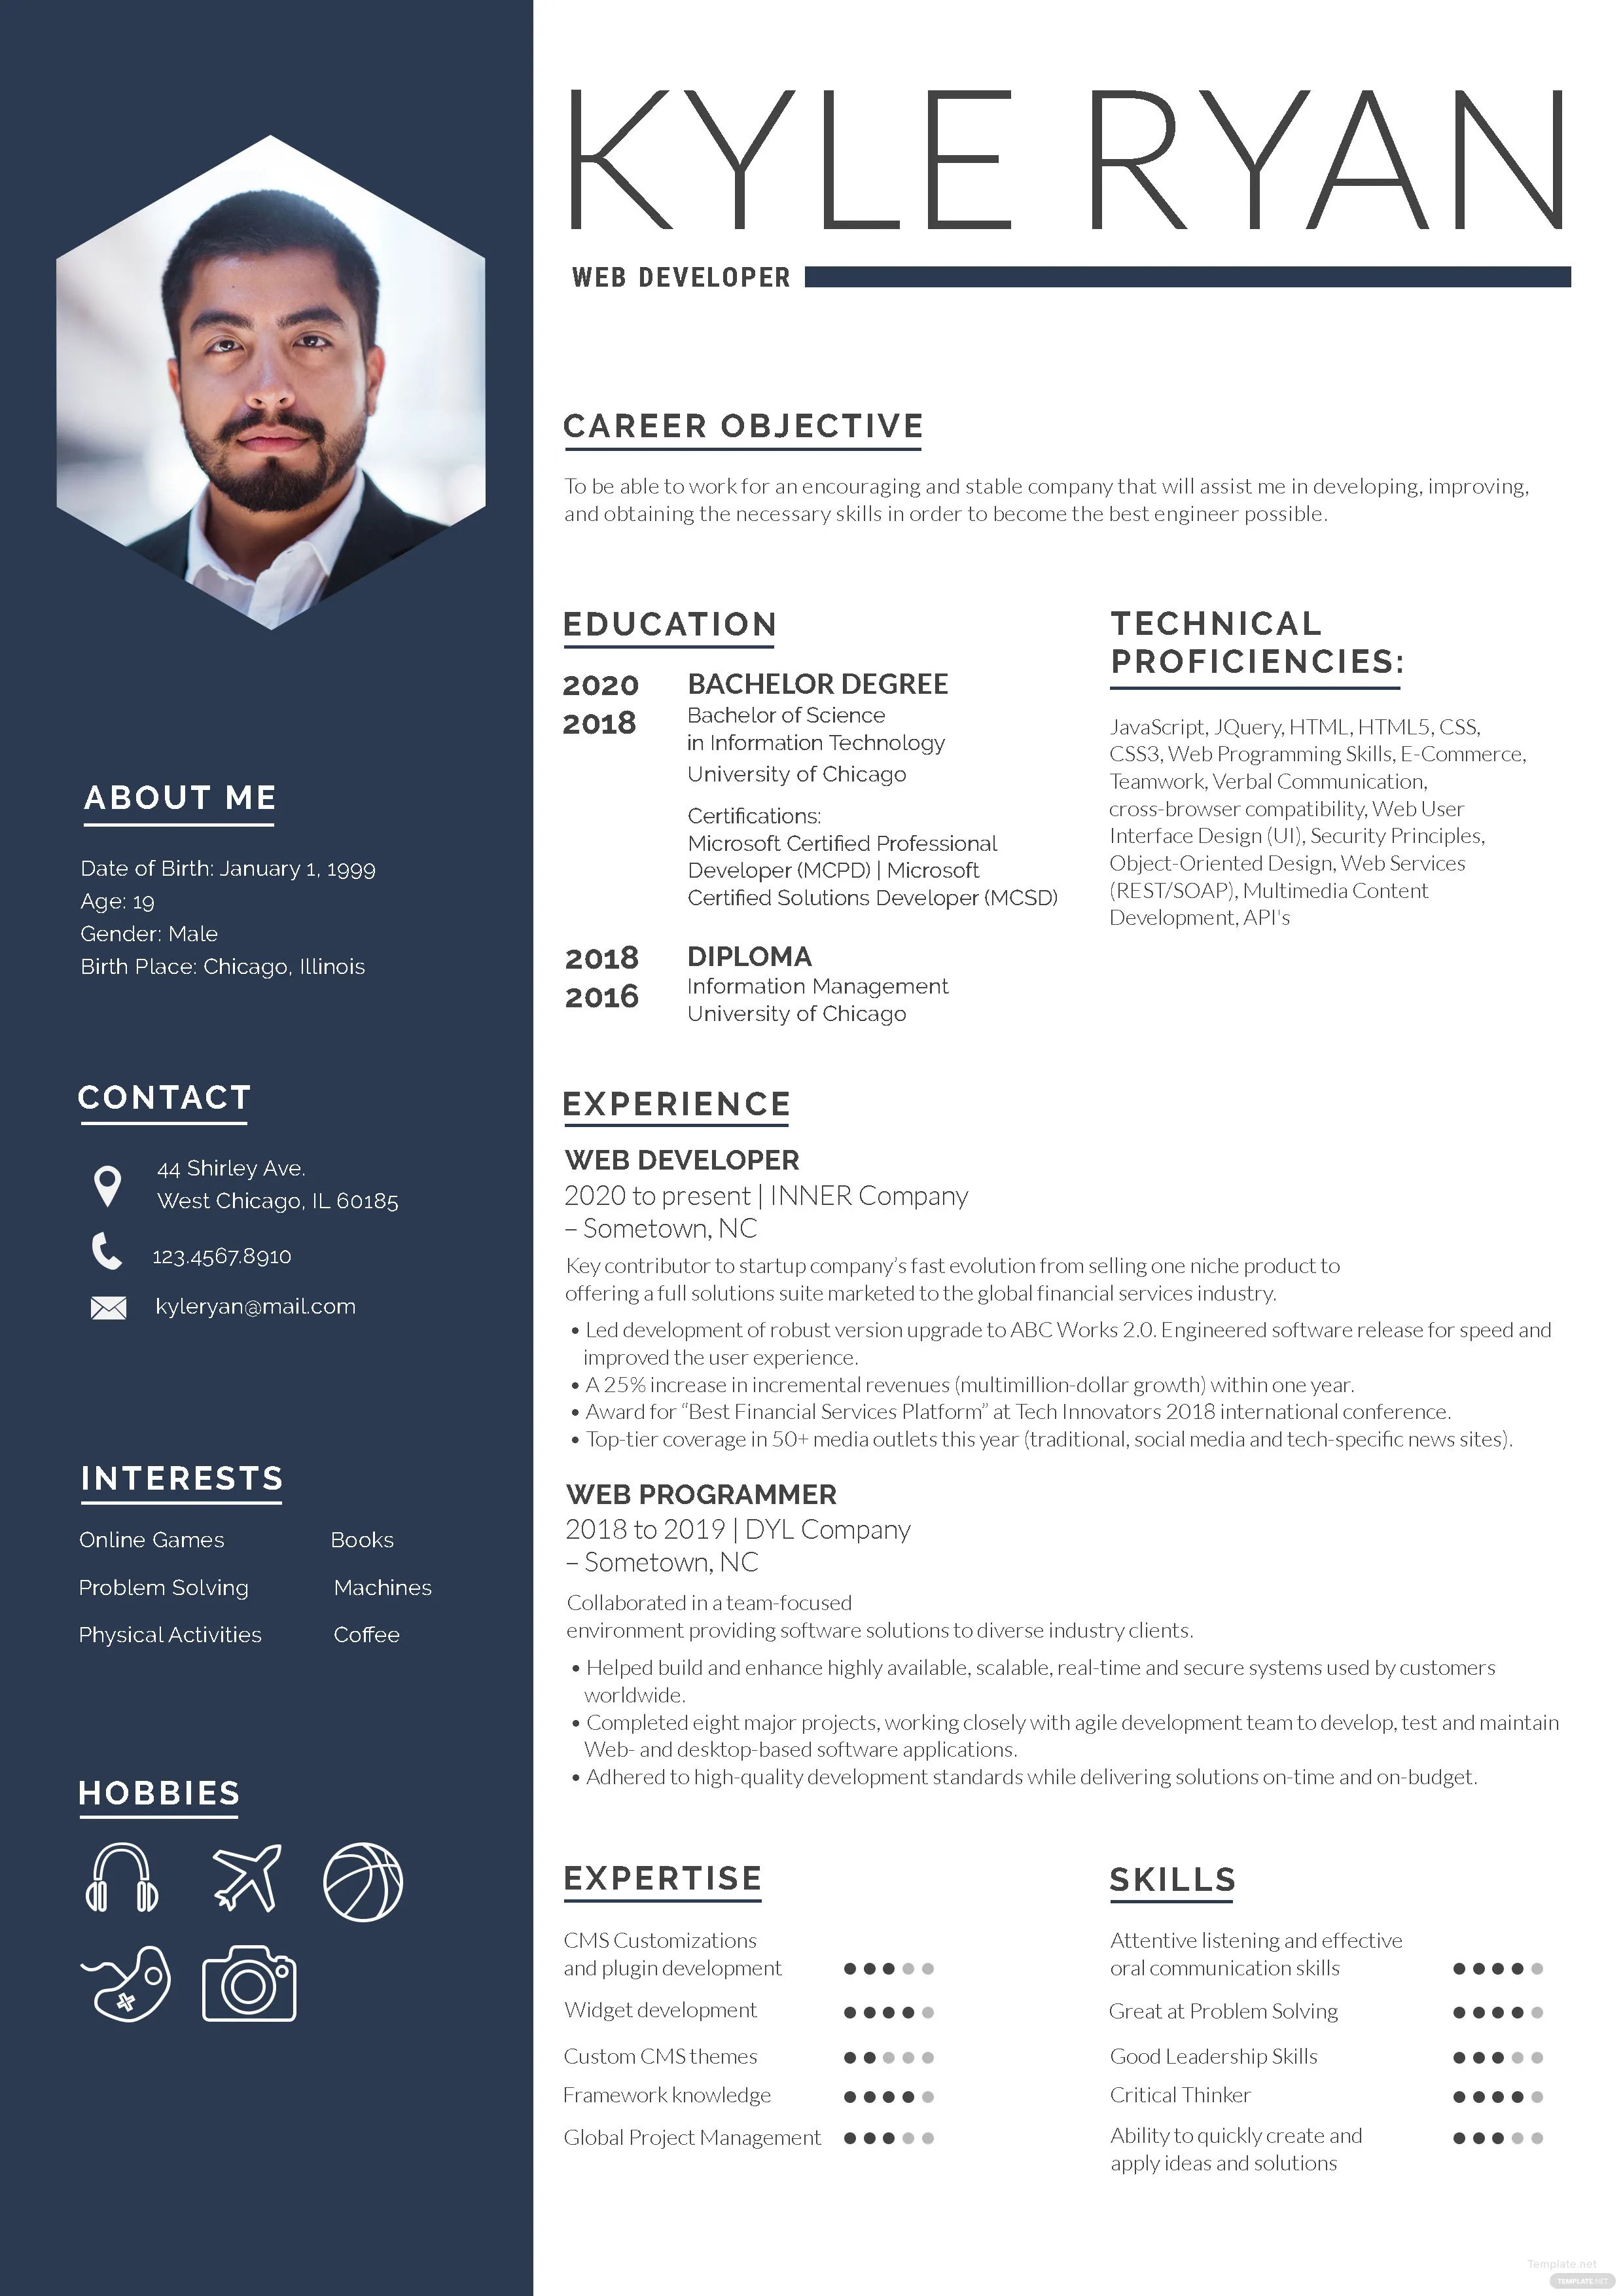 Web Developer Resume Template in Adobe Photoshop